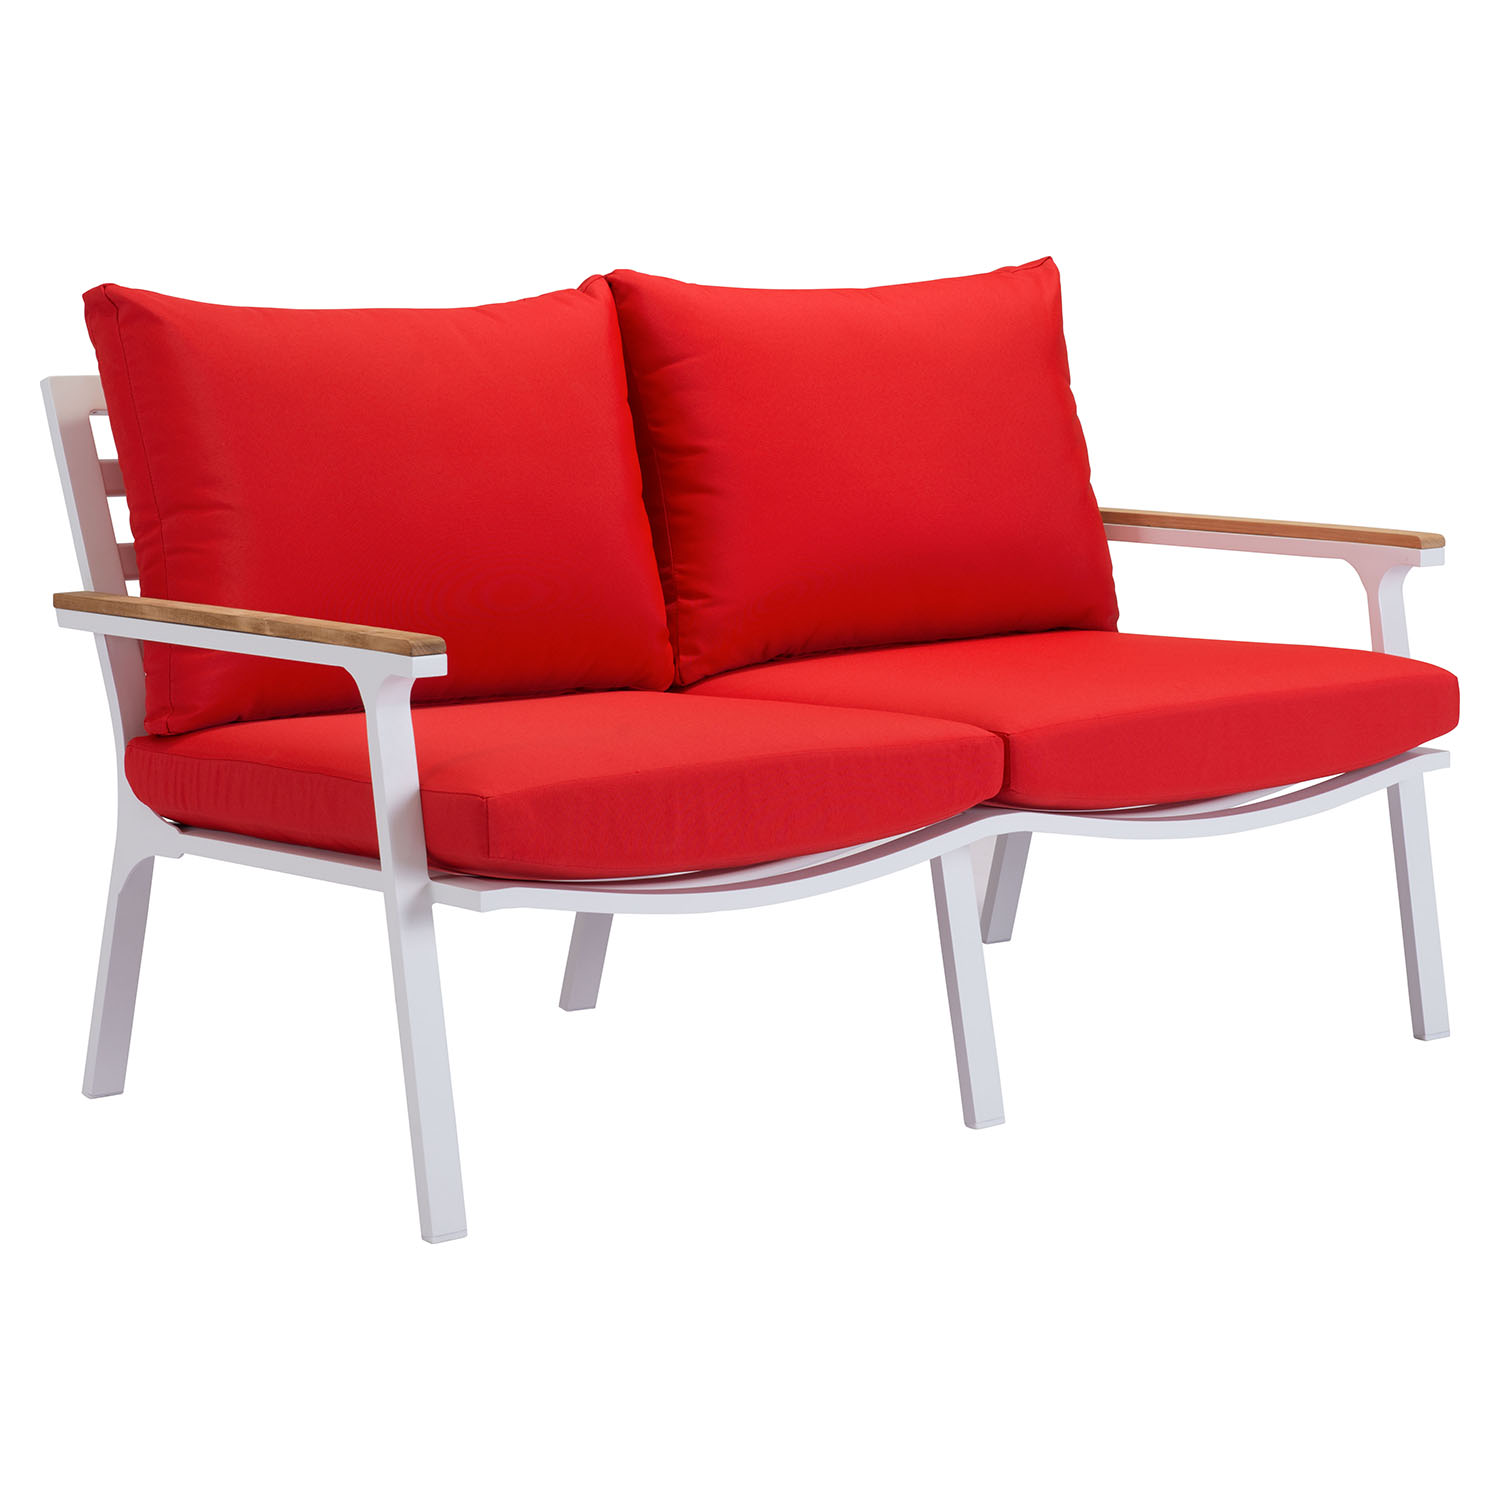 Maya Beach Sofa - Red Fabric, Natural and White Finish - ZM-703575